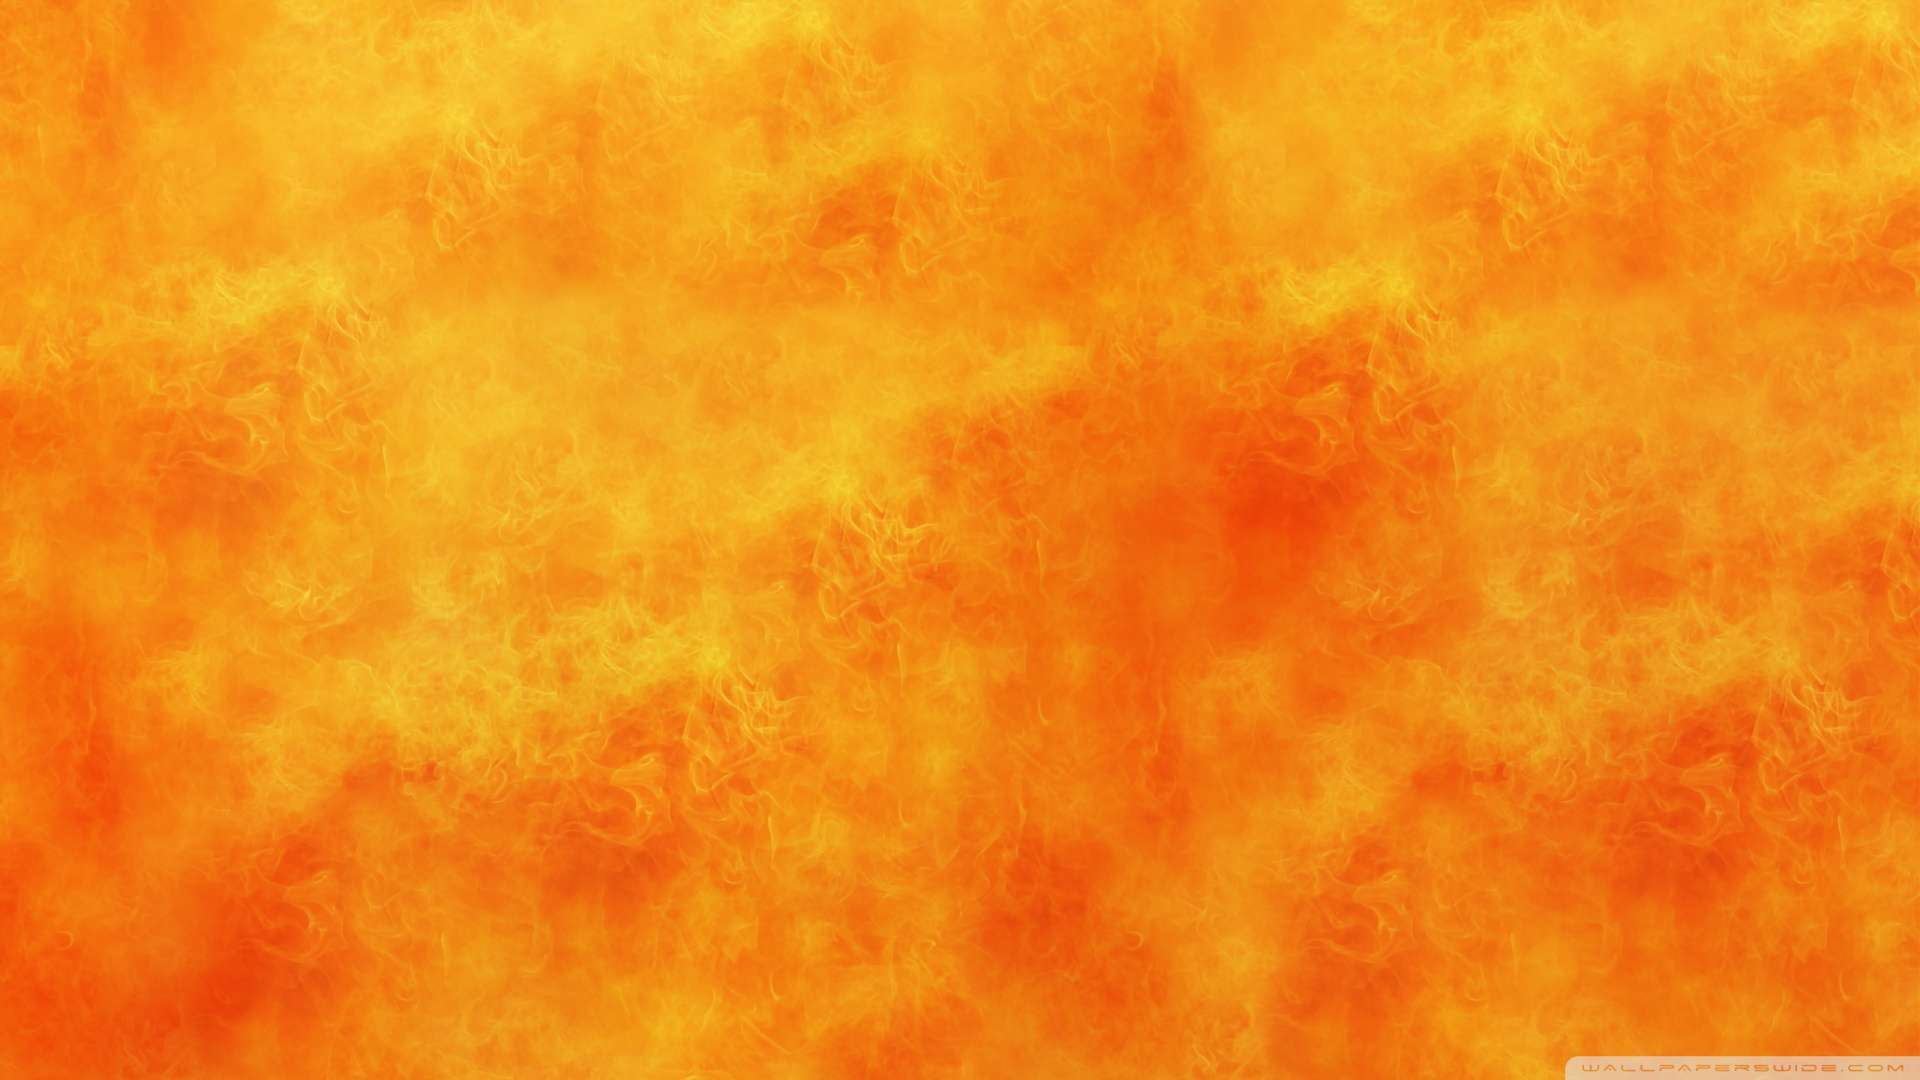 Wallpaper Fire Background Wallpaper 1080p HD Upload at January 7 1920x1080